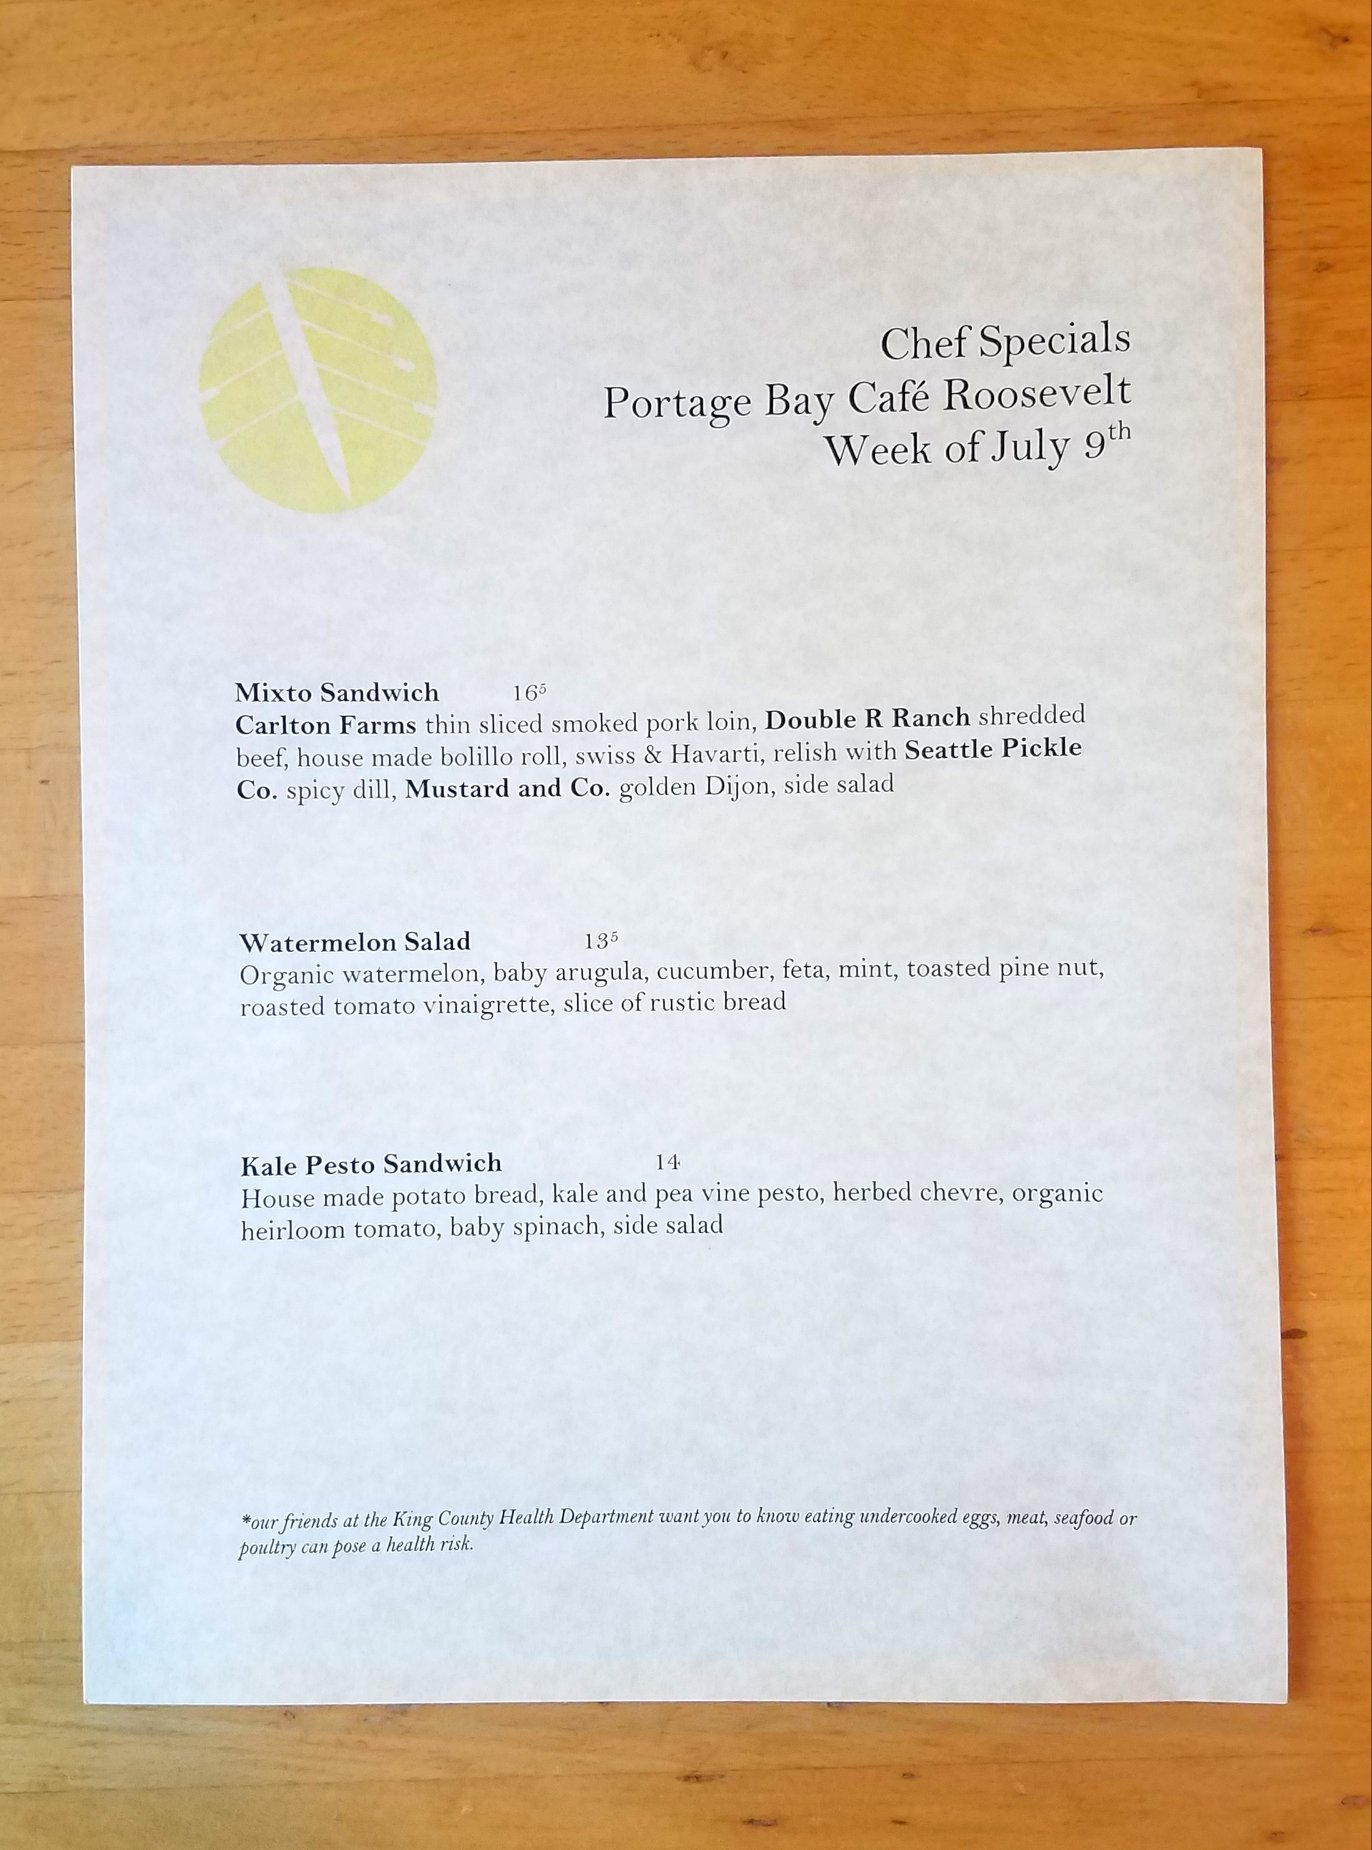 Specials featured at the Roosevelt location this week. Catch them while you can!